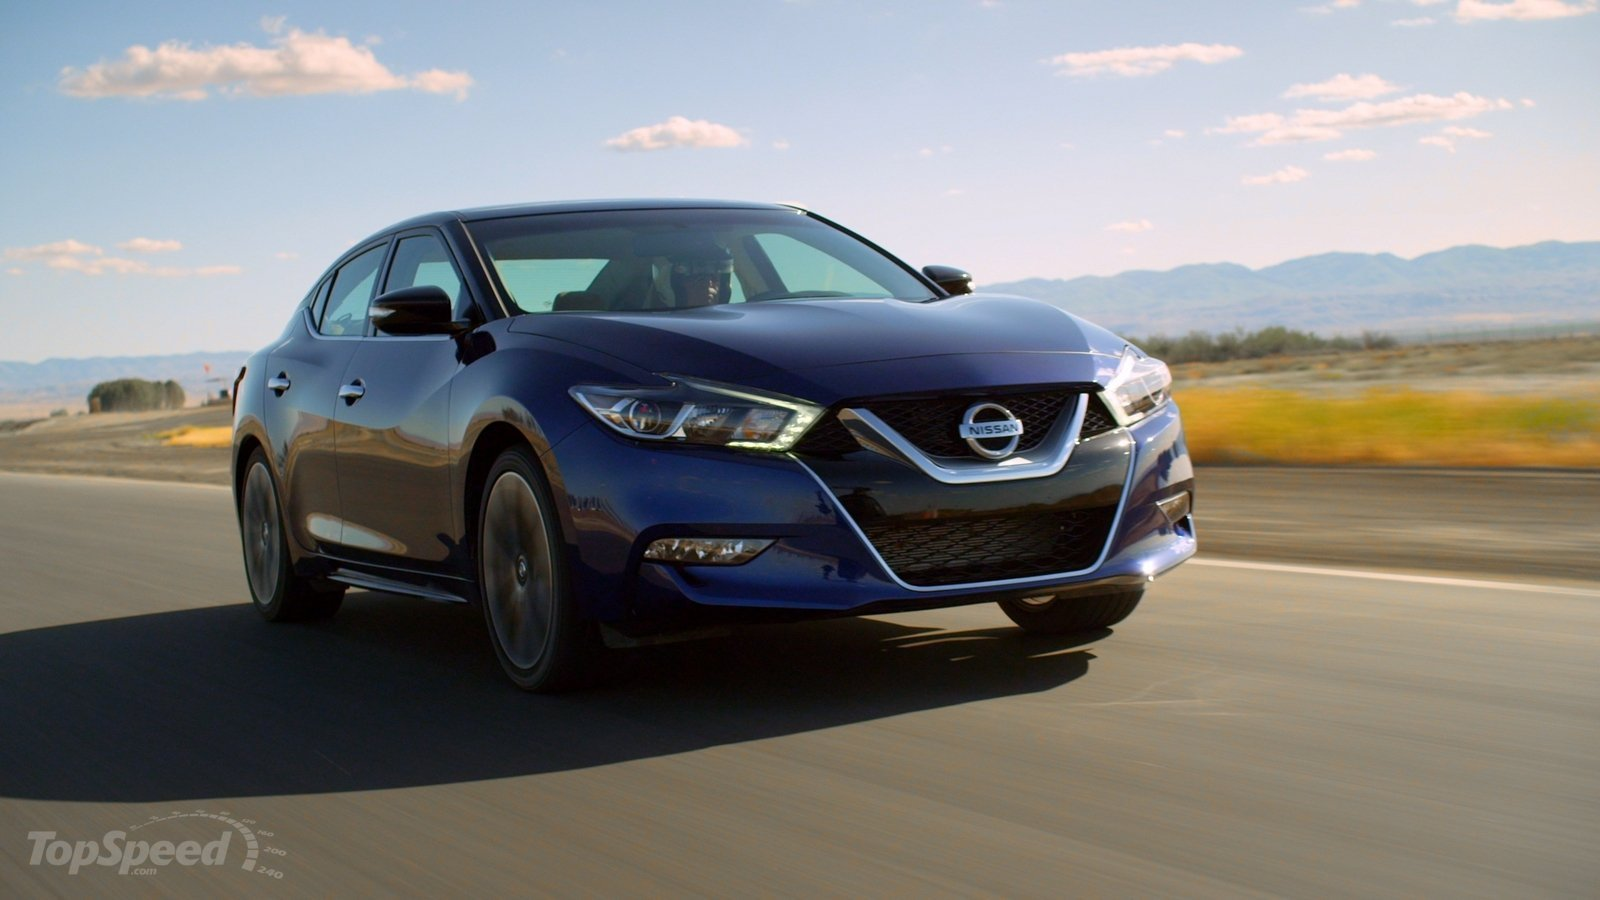 2016 nissan maxima bests bmw and audi sports sedans on the track video news top speed. Black Bedroom Furniture Sets. Home Design Ideas